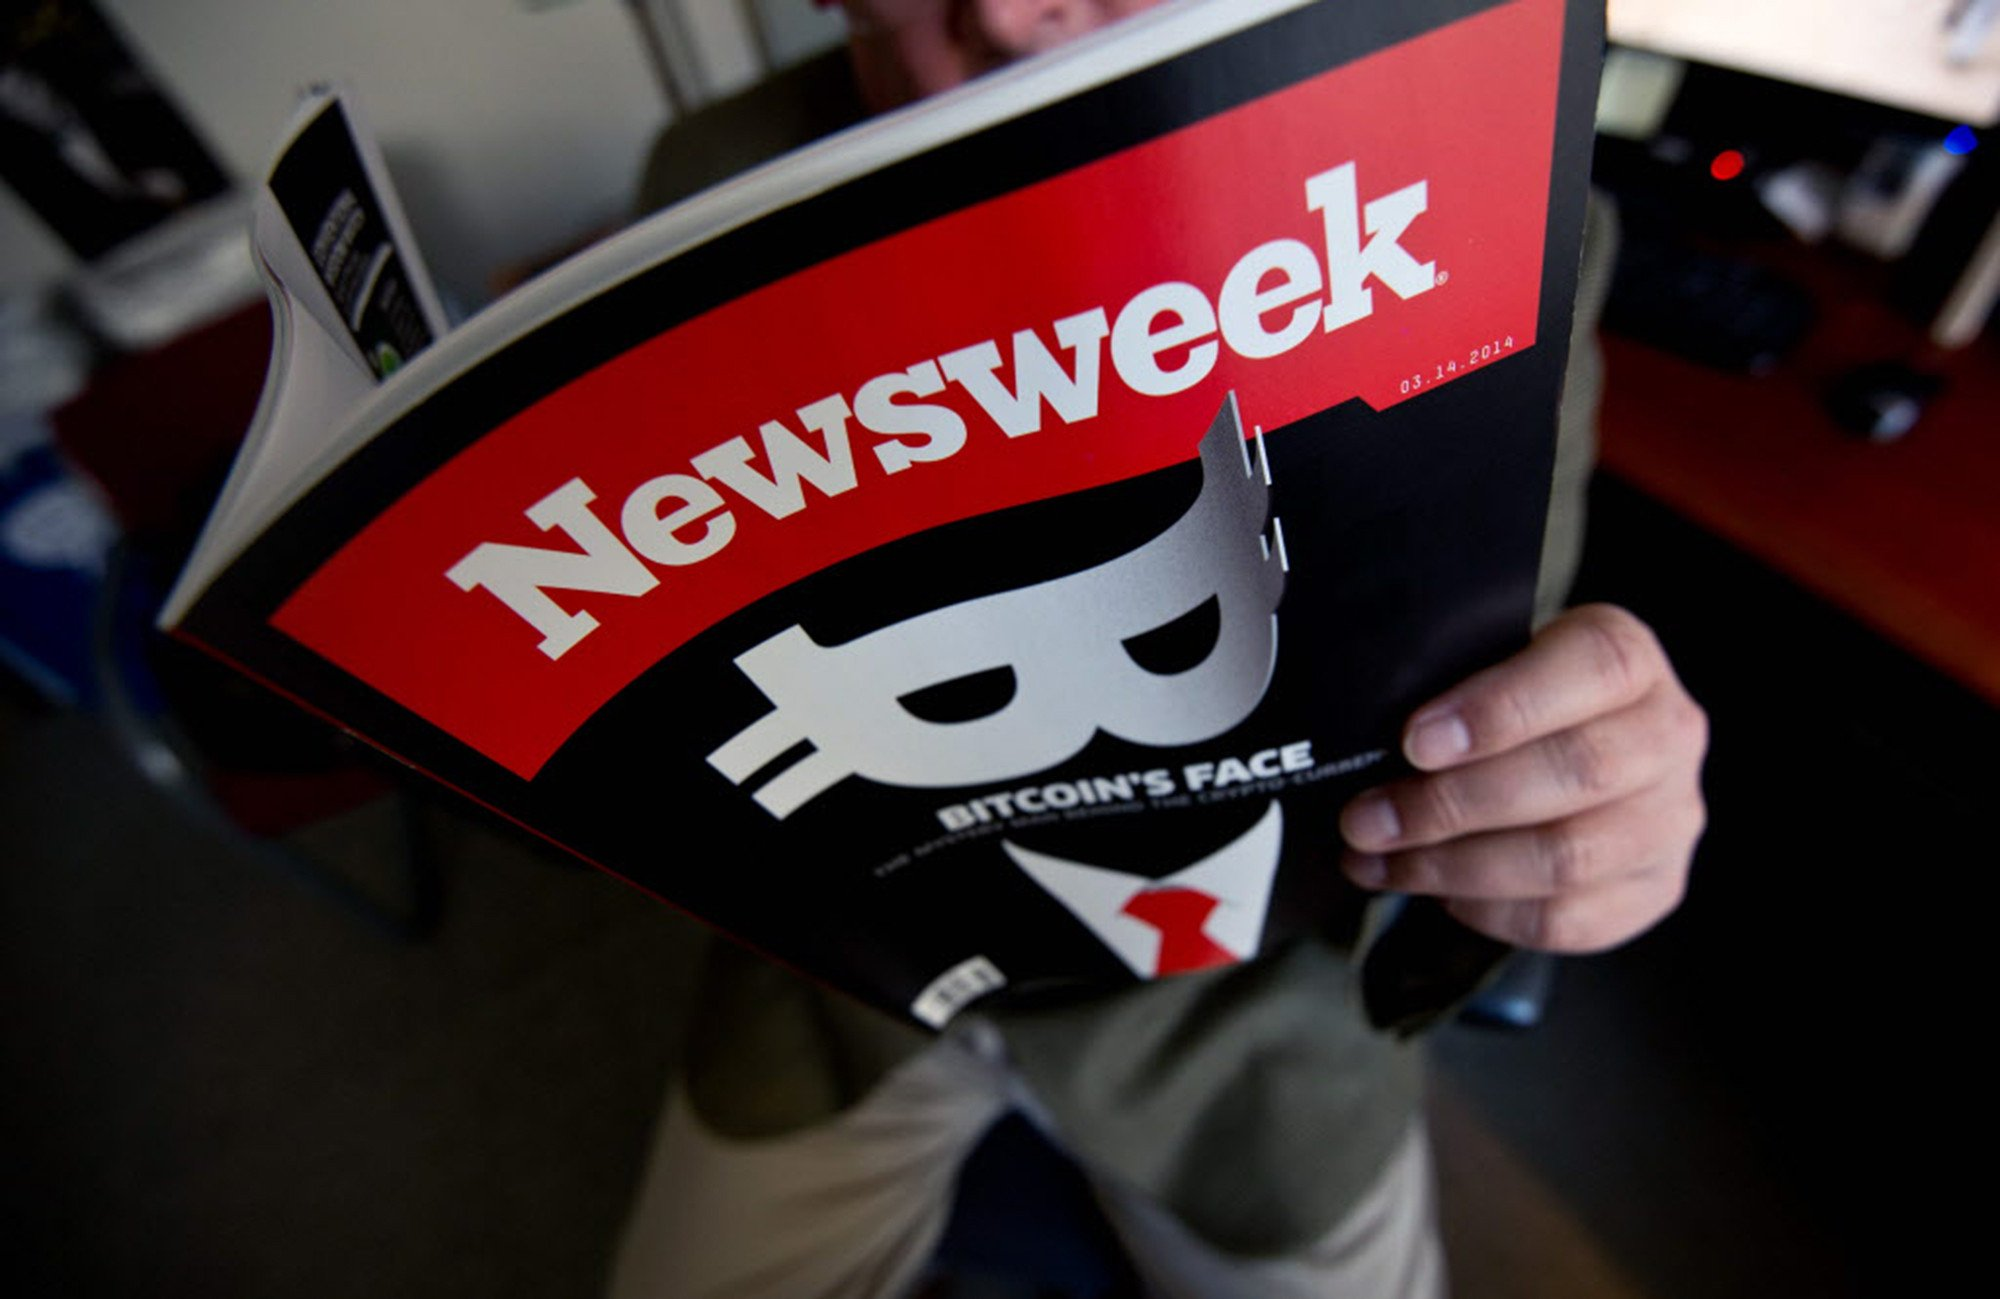 DA raids offices of church group with financial ties to Newsweek